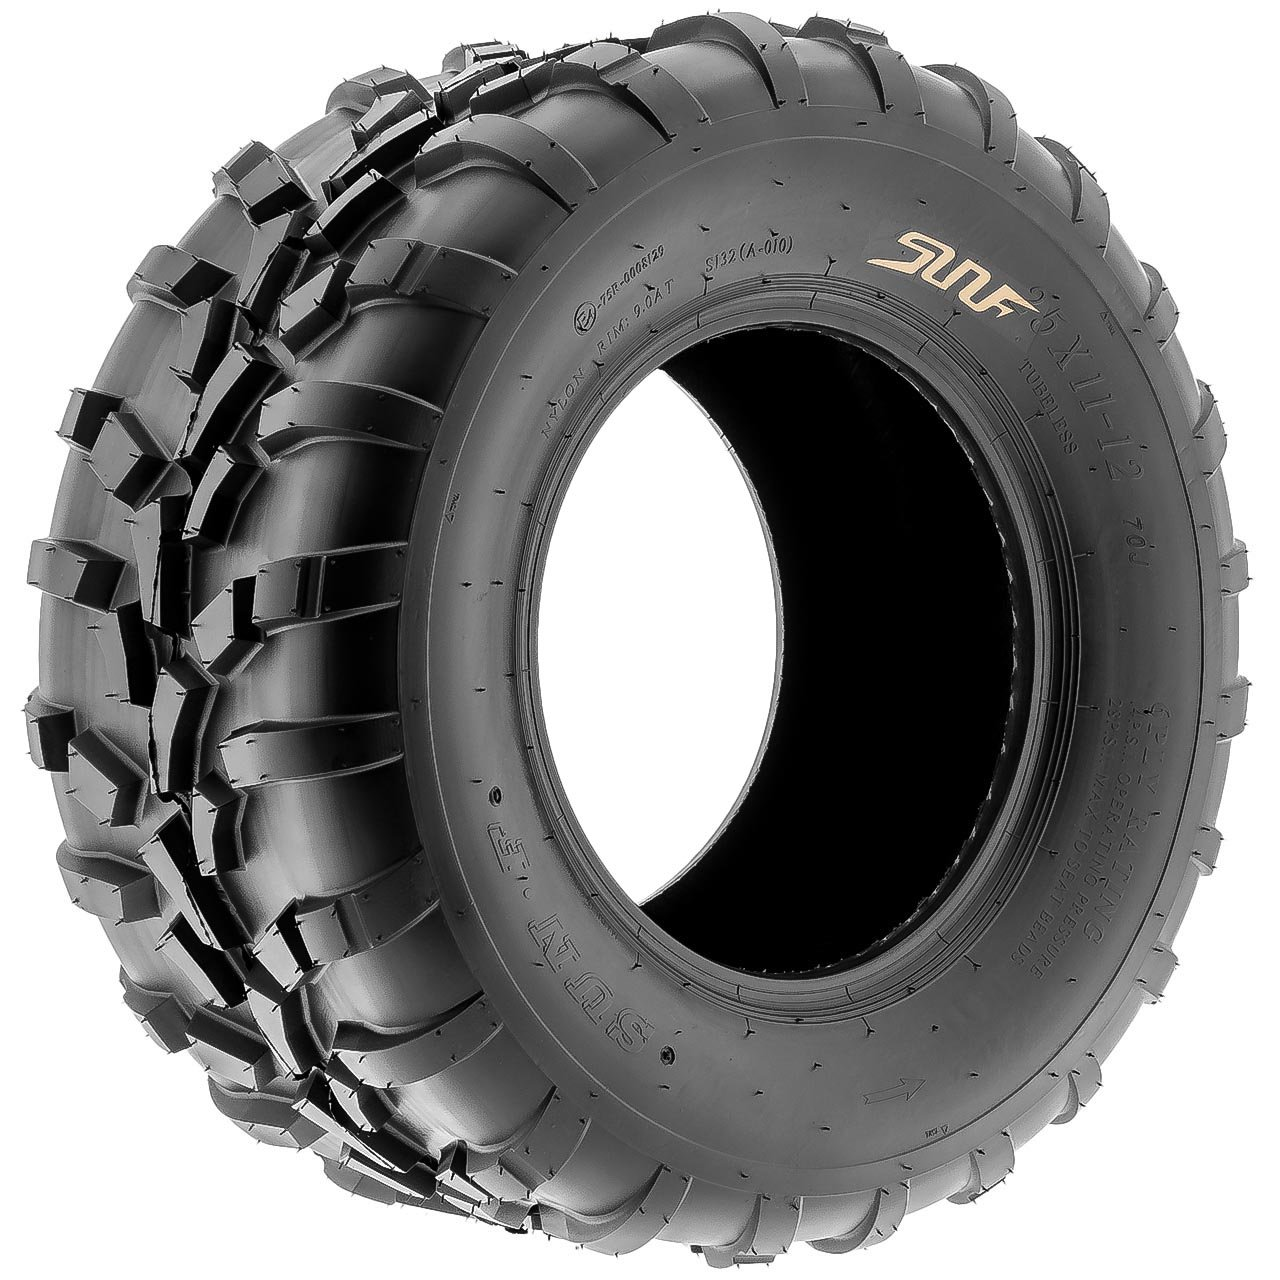 Pair of 2 SunF 25x11-12 AT-XC ATV/UTV Off-Road Tires , 6PR , Directional Knobby Tread | A010 by SunF (Image #9)